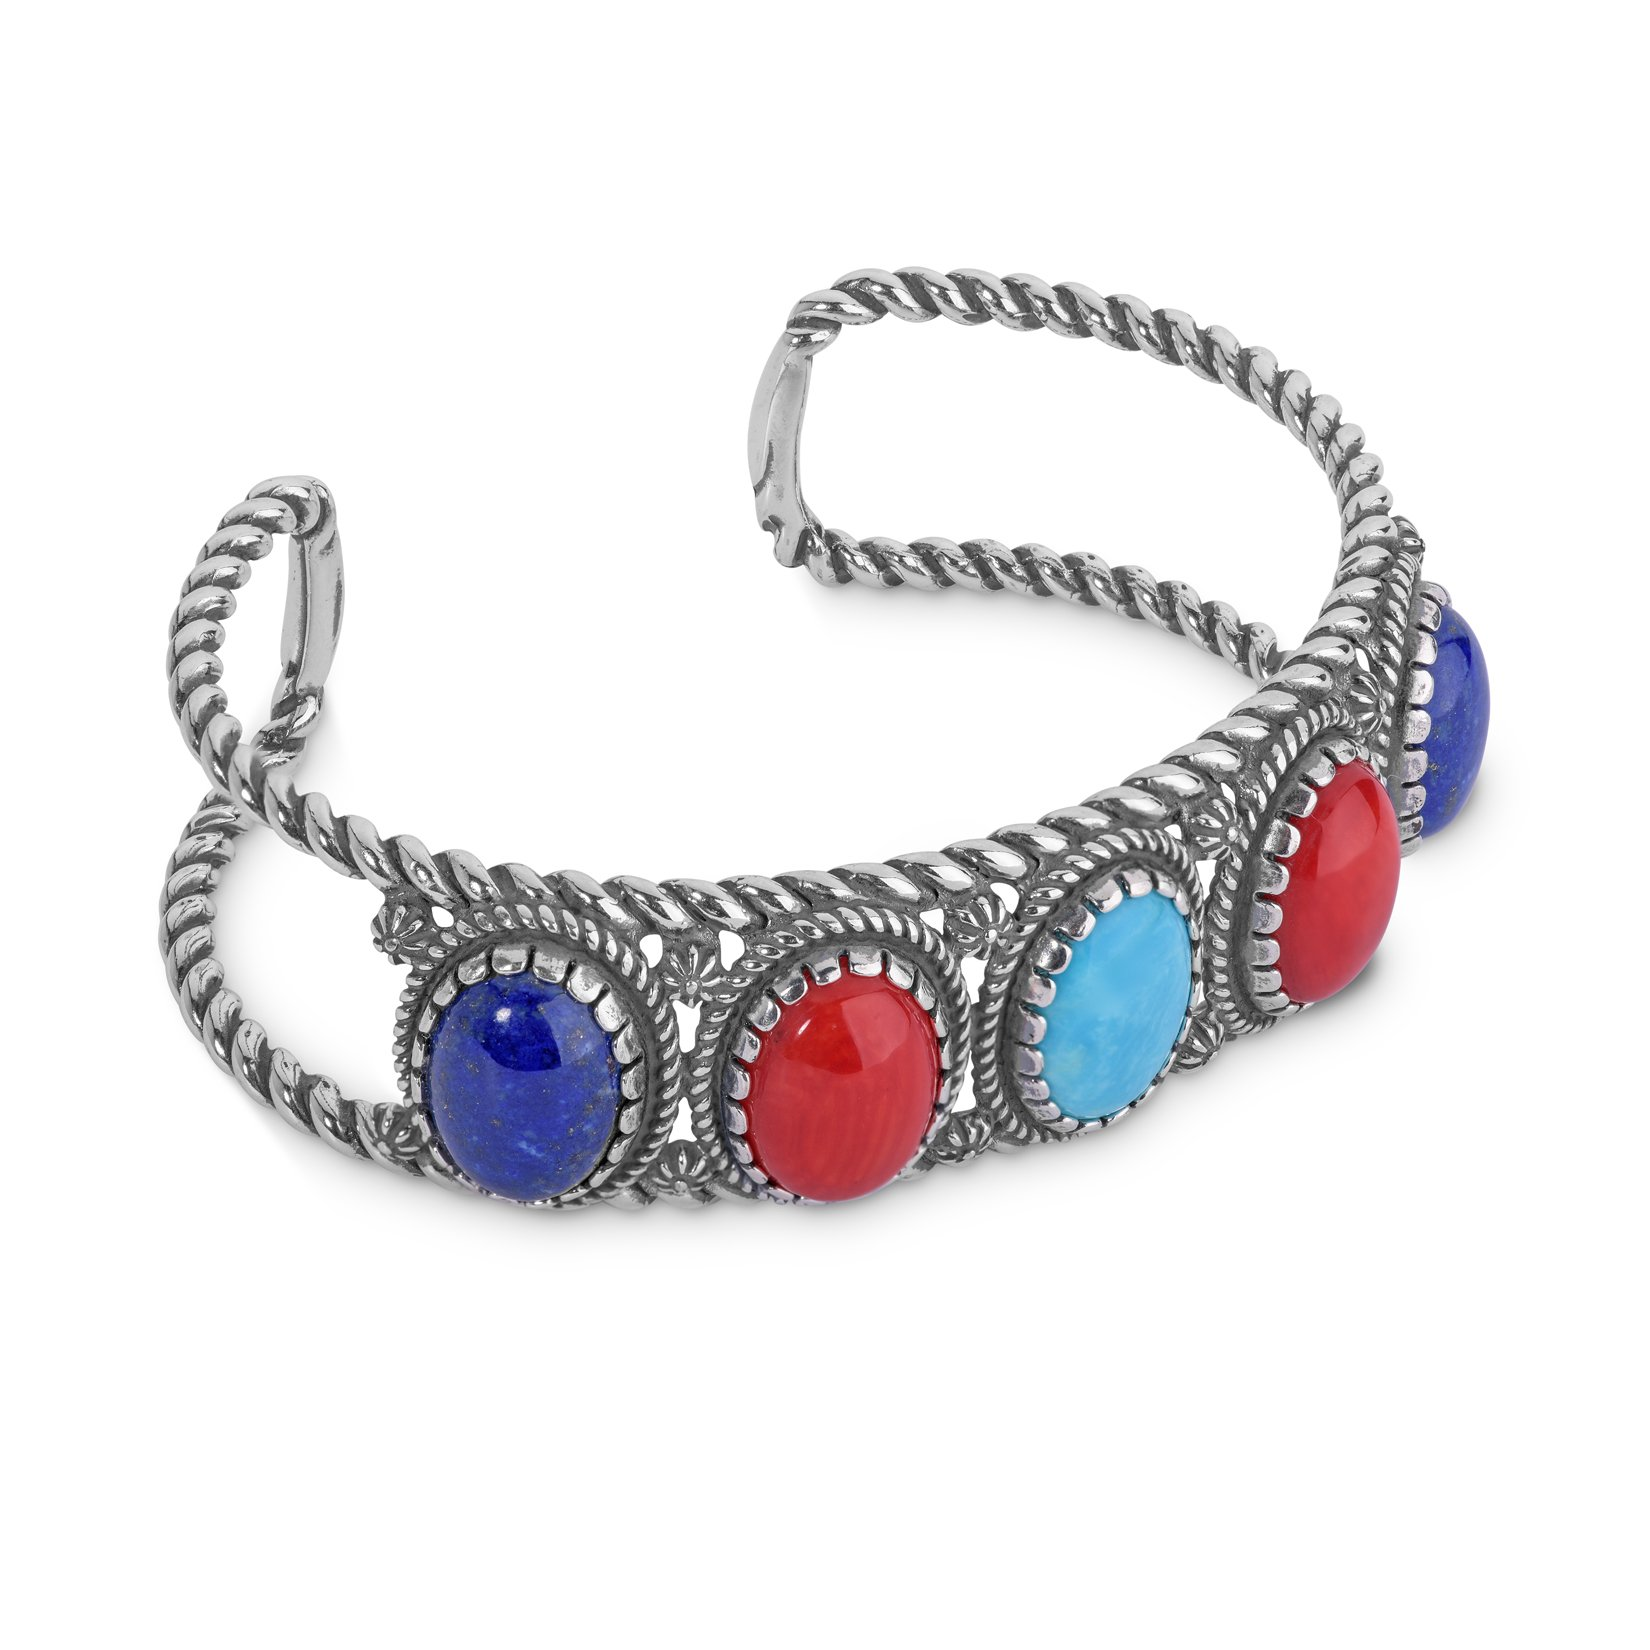 925 Silver & Five Stone Lapis, Red Coral, Turquoise Cuff Bracelet - Medium